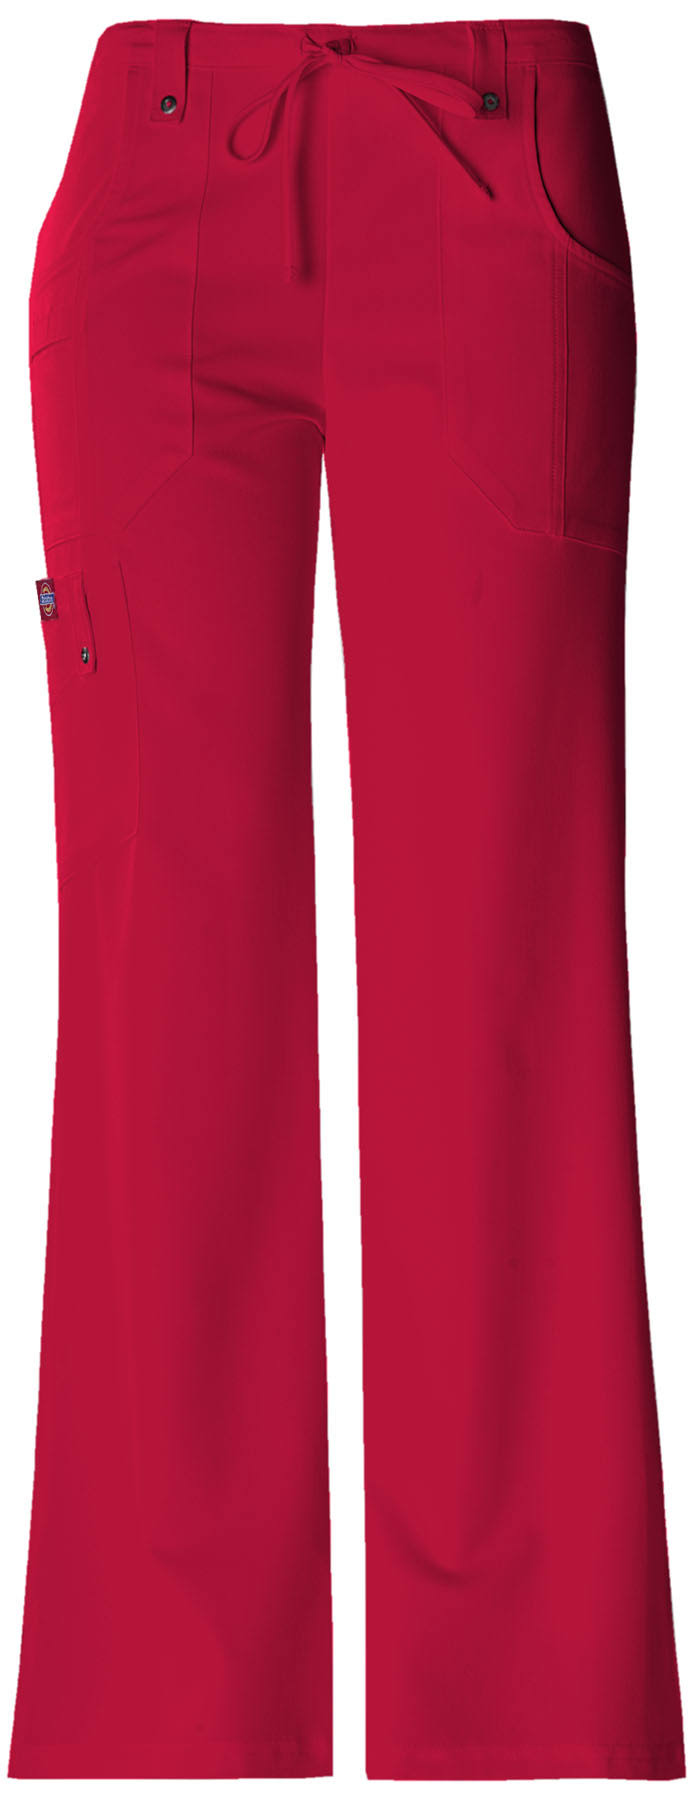 Dickies Women's Xtreme Stretch Tall Drawstring Scrub Pant - XL - Red